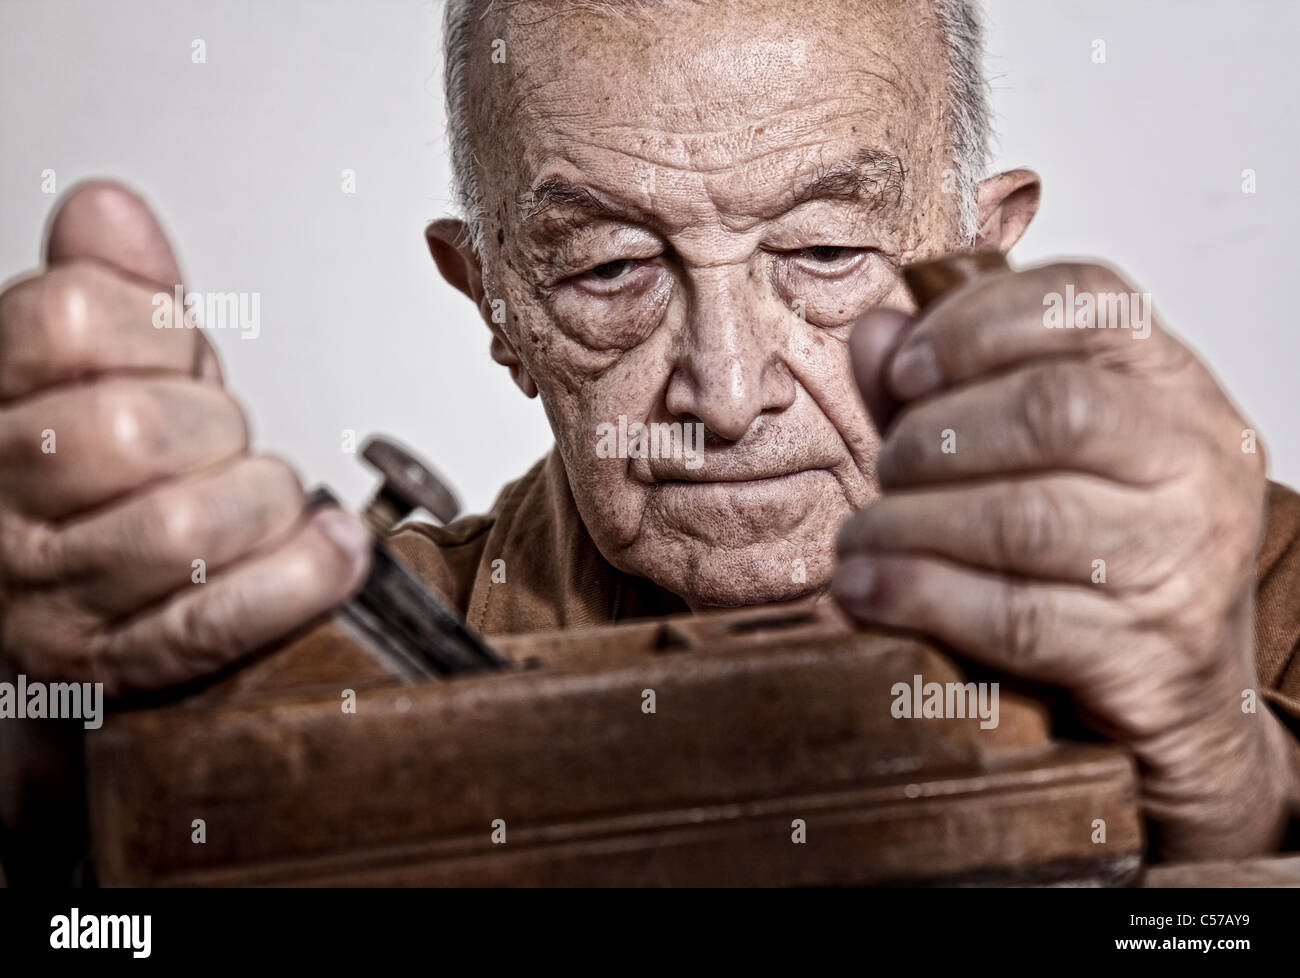 close up image of old carpenter on duty - Stock Image